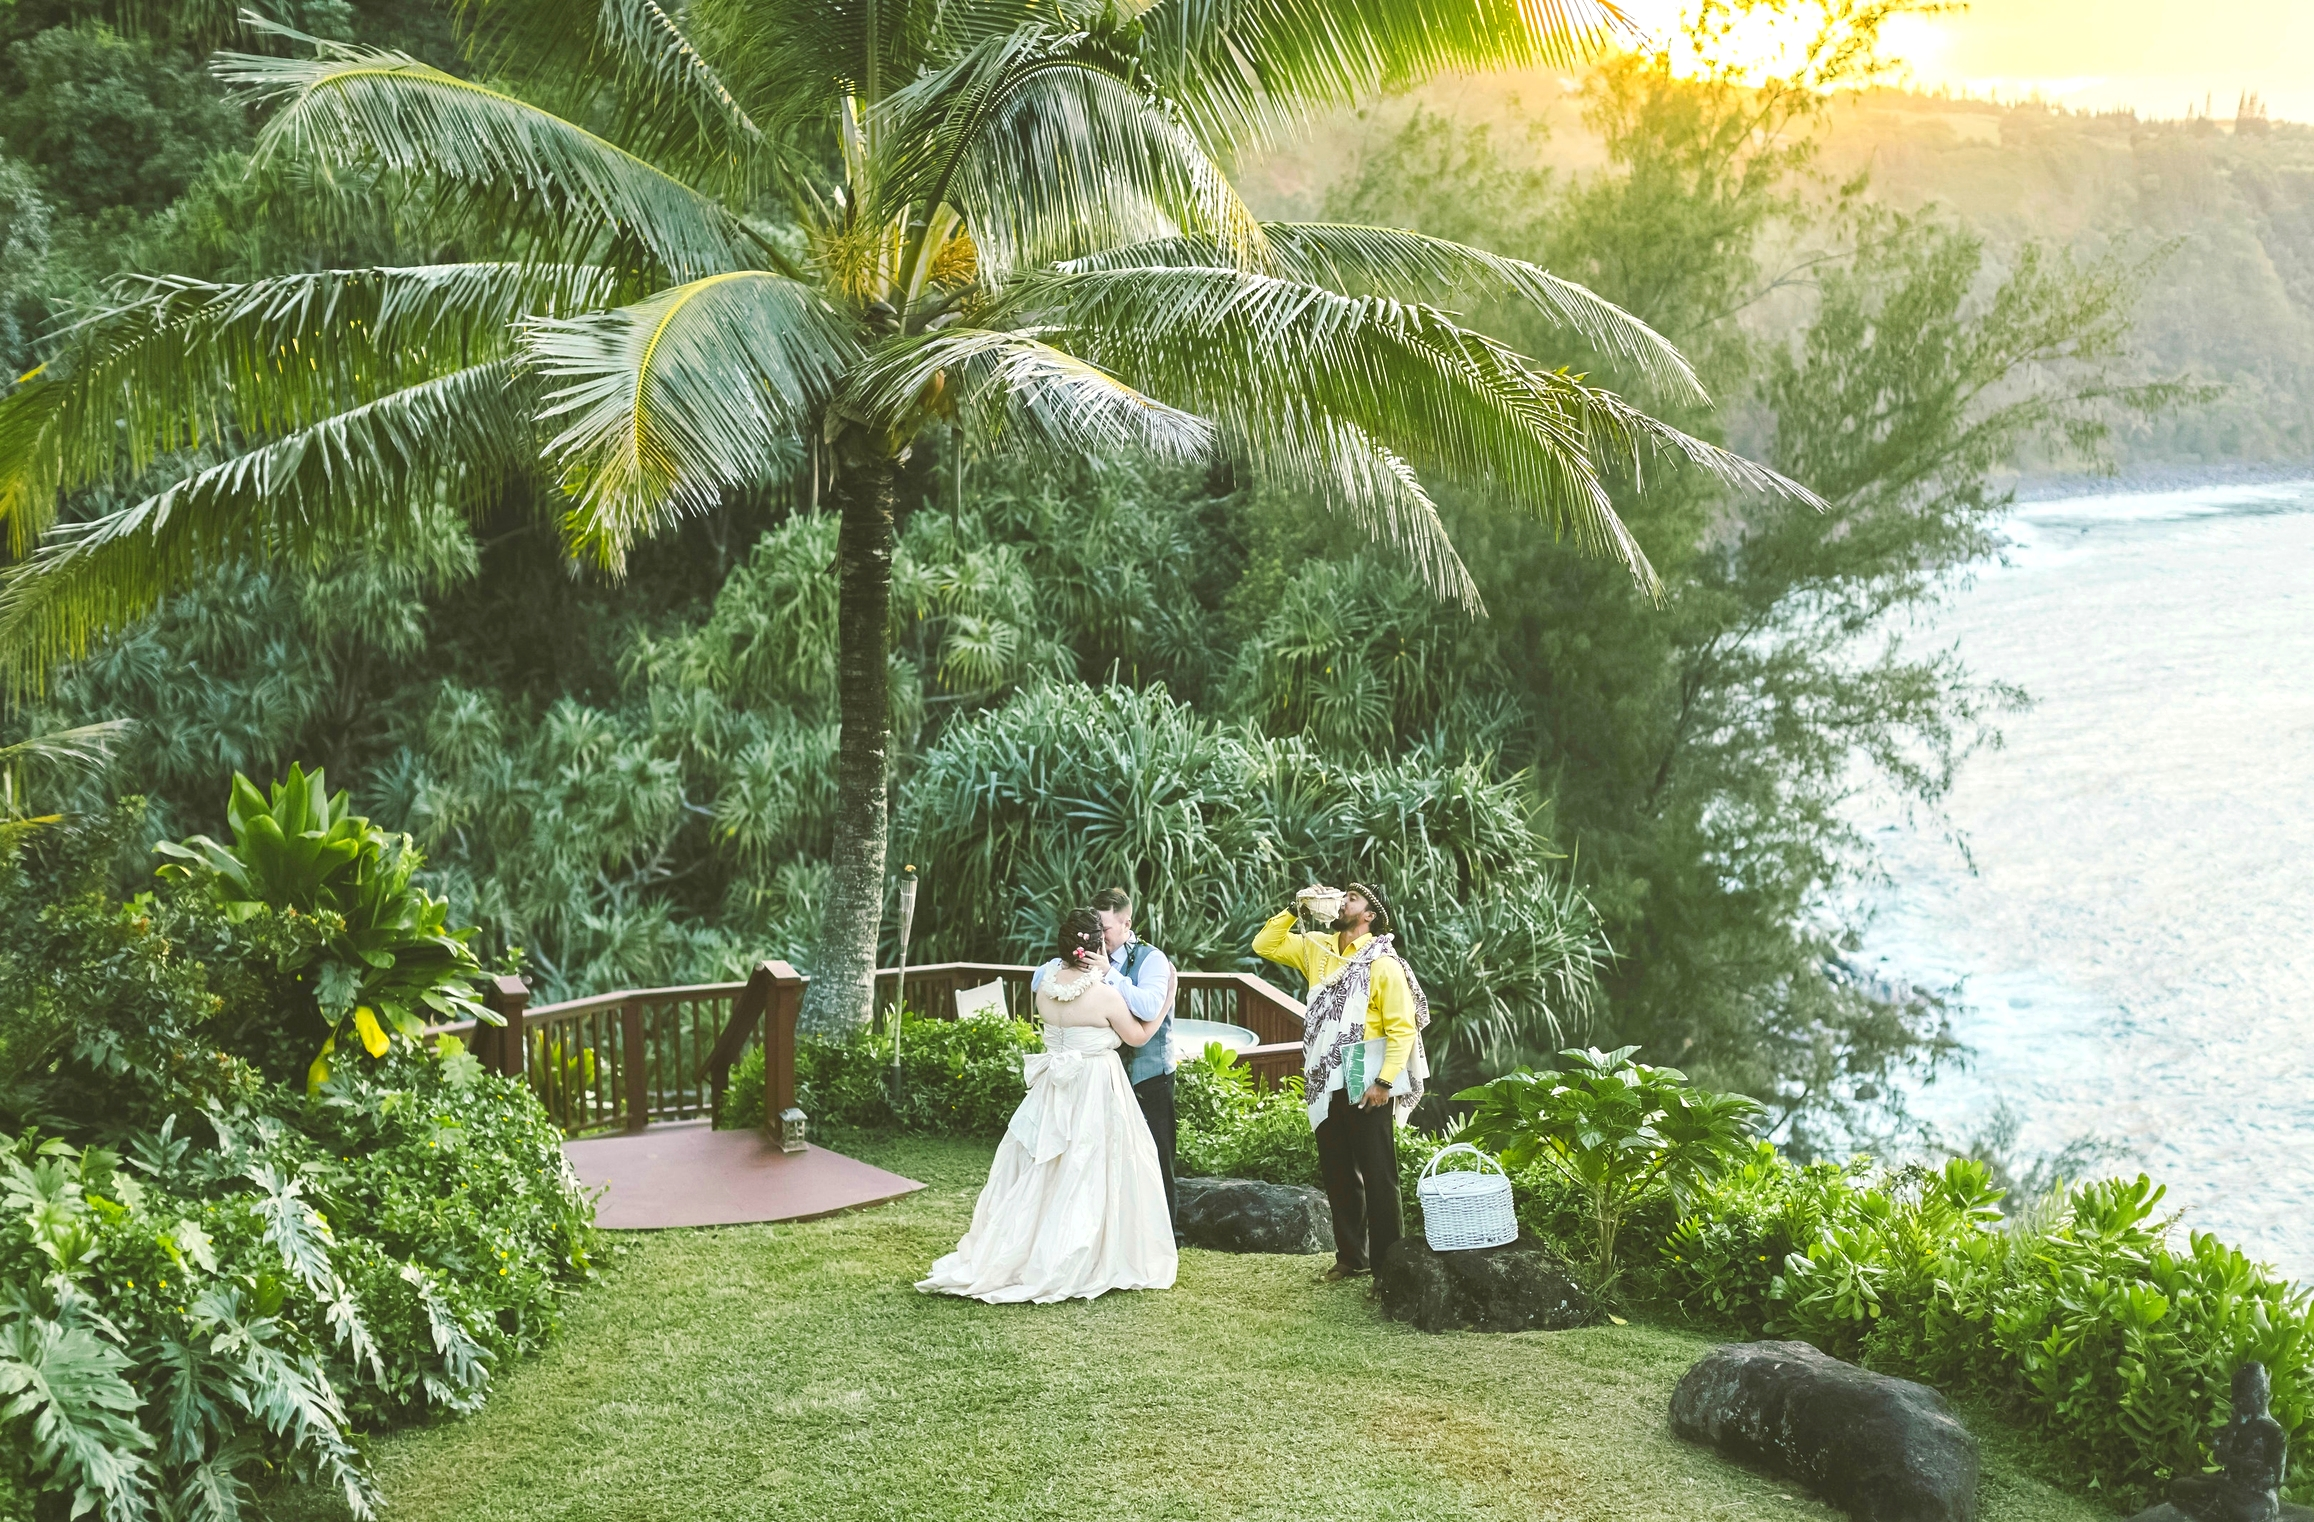 angie-diaz-photography-maui-elopement-96.jpg